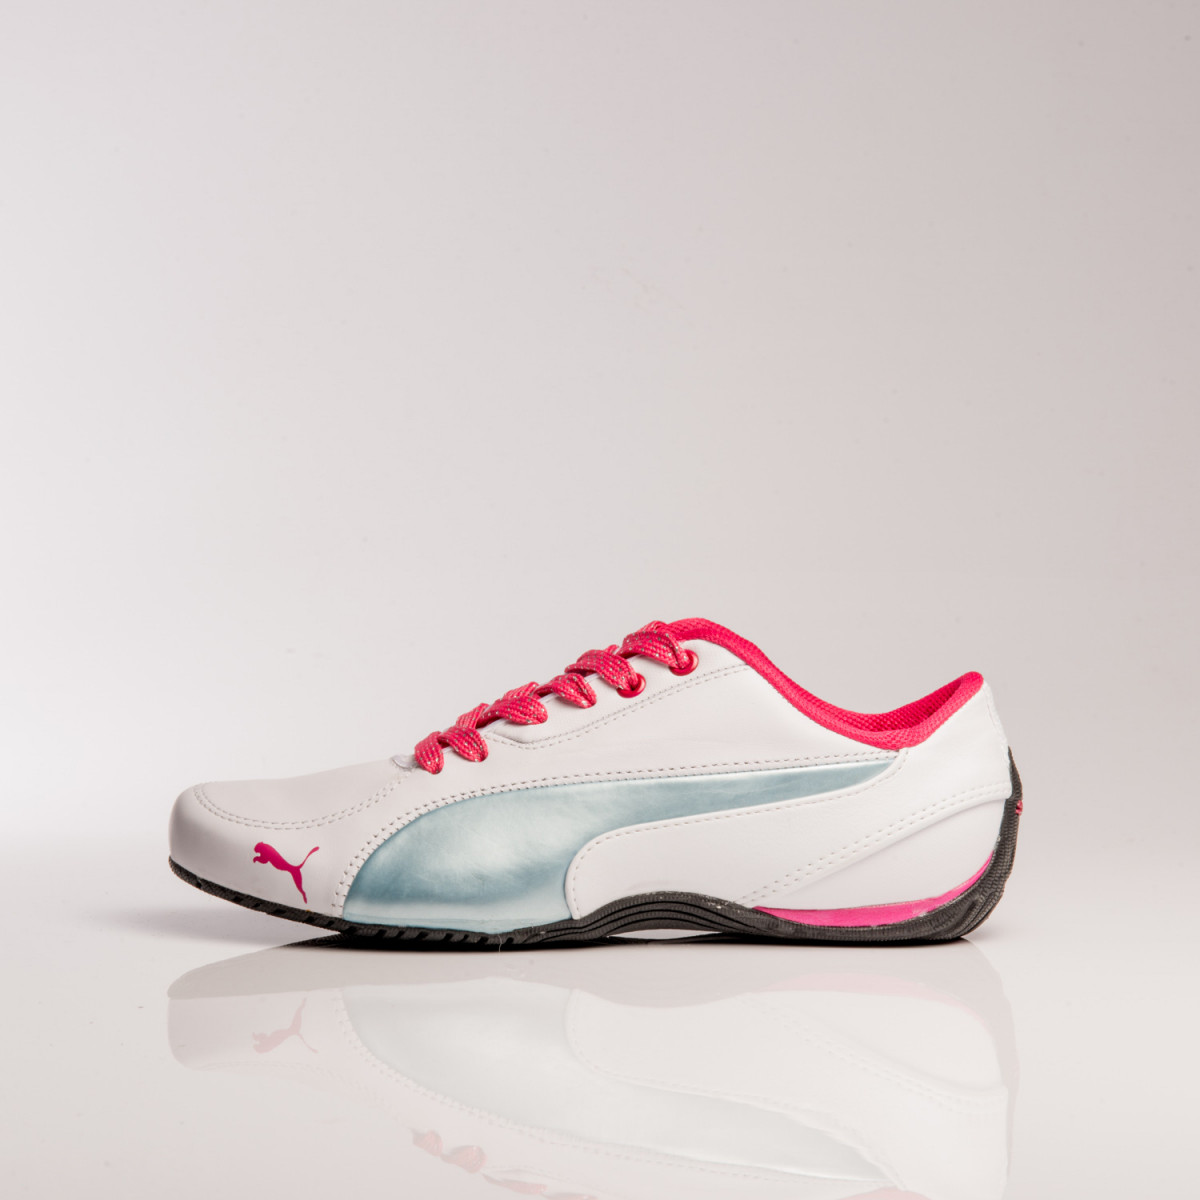 ZAPATILLAS PUMA DRIFT CAT 5 CM WN´S